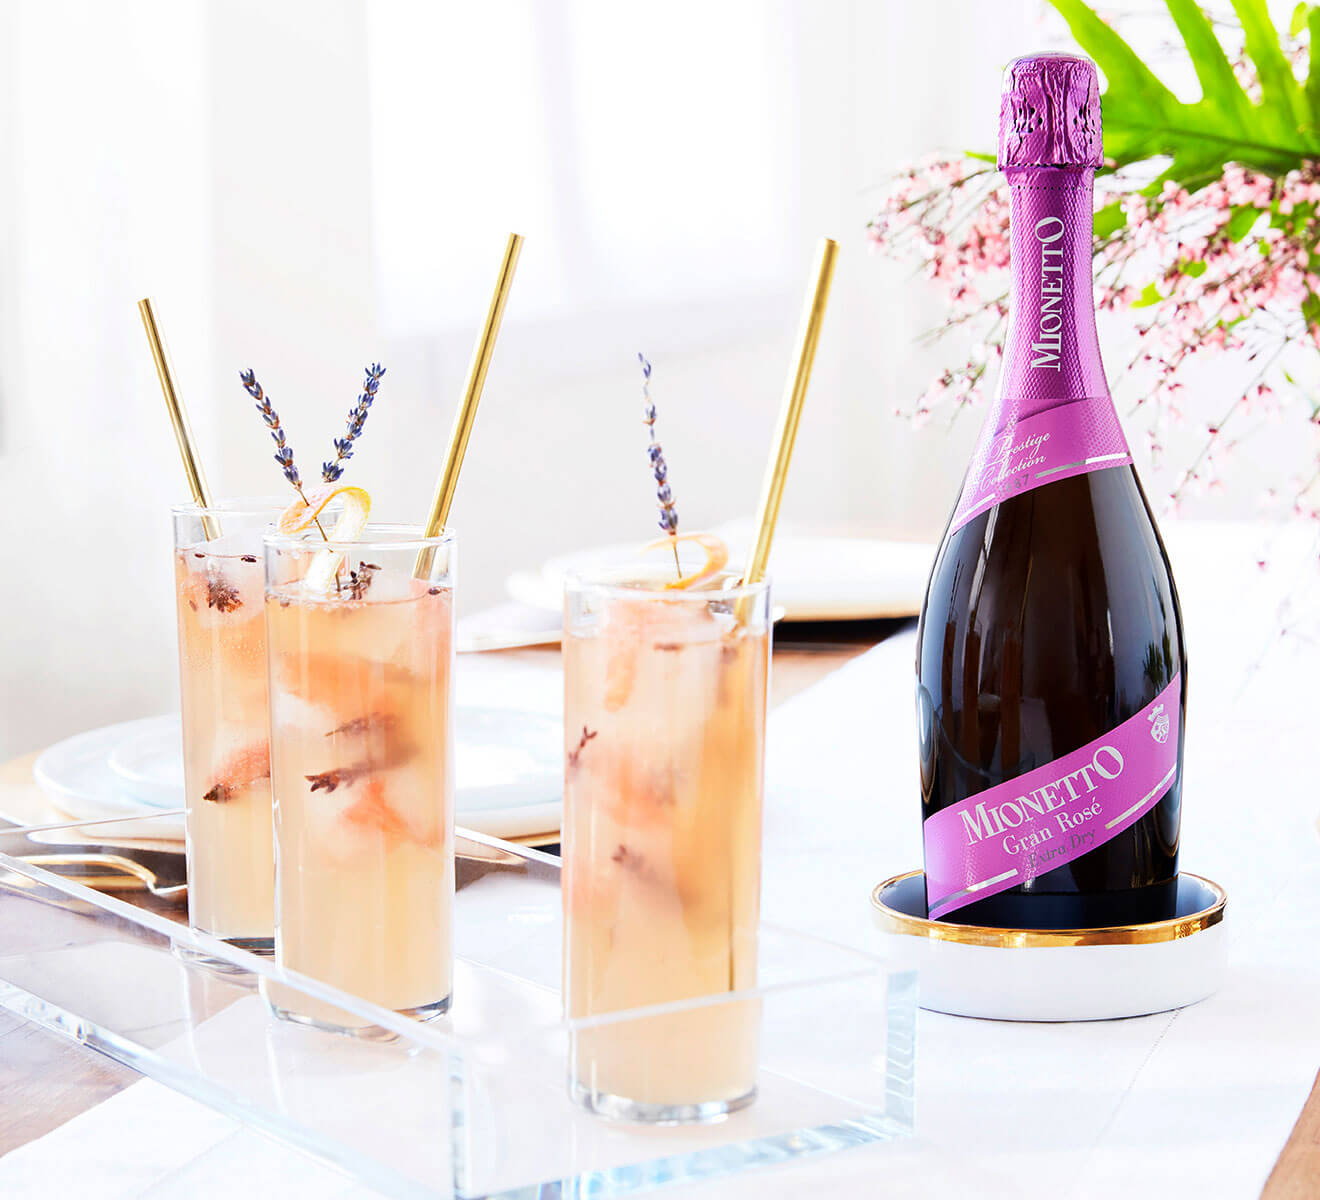 Lavender Blush cocktail with Mionetto-Prosecco